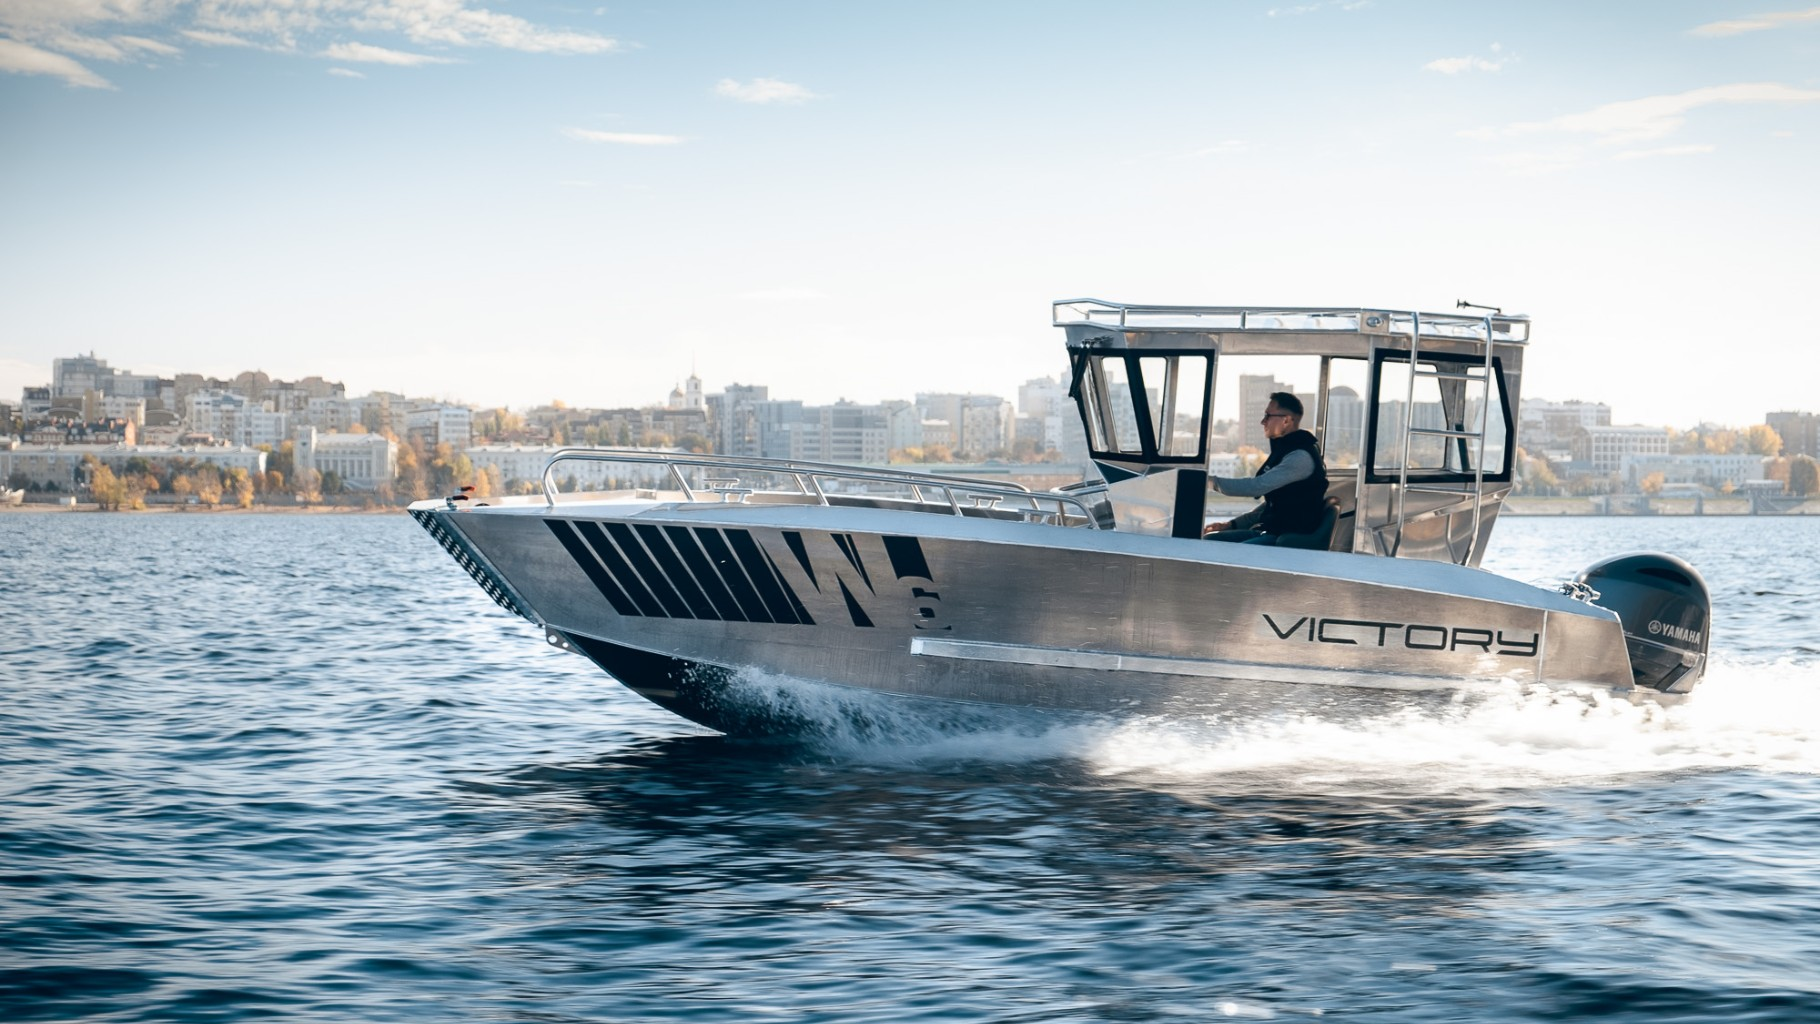 https://www.victory-boats.ru/wp-content/uploads/2020/11/apparel-victory-w6.jpg